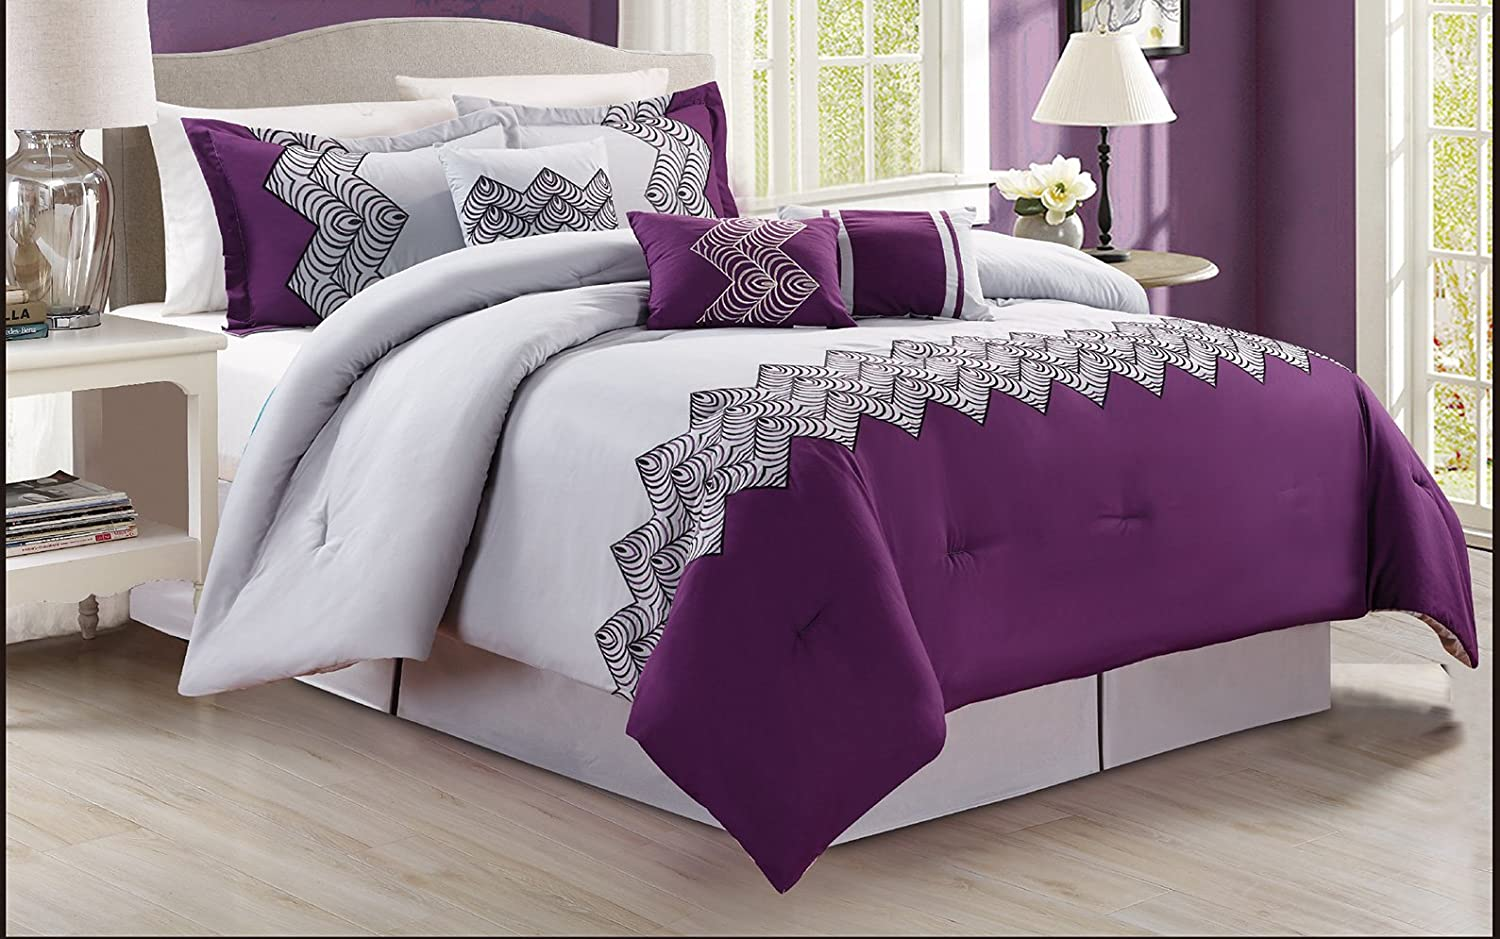 black and purple comforter bedding ease bedding with style. Black Bedroom Furniture Sets. Home Design Ideas